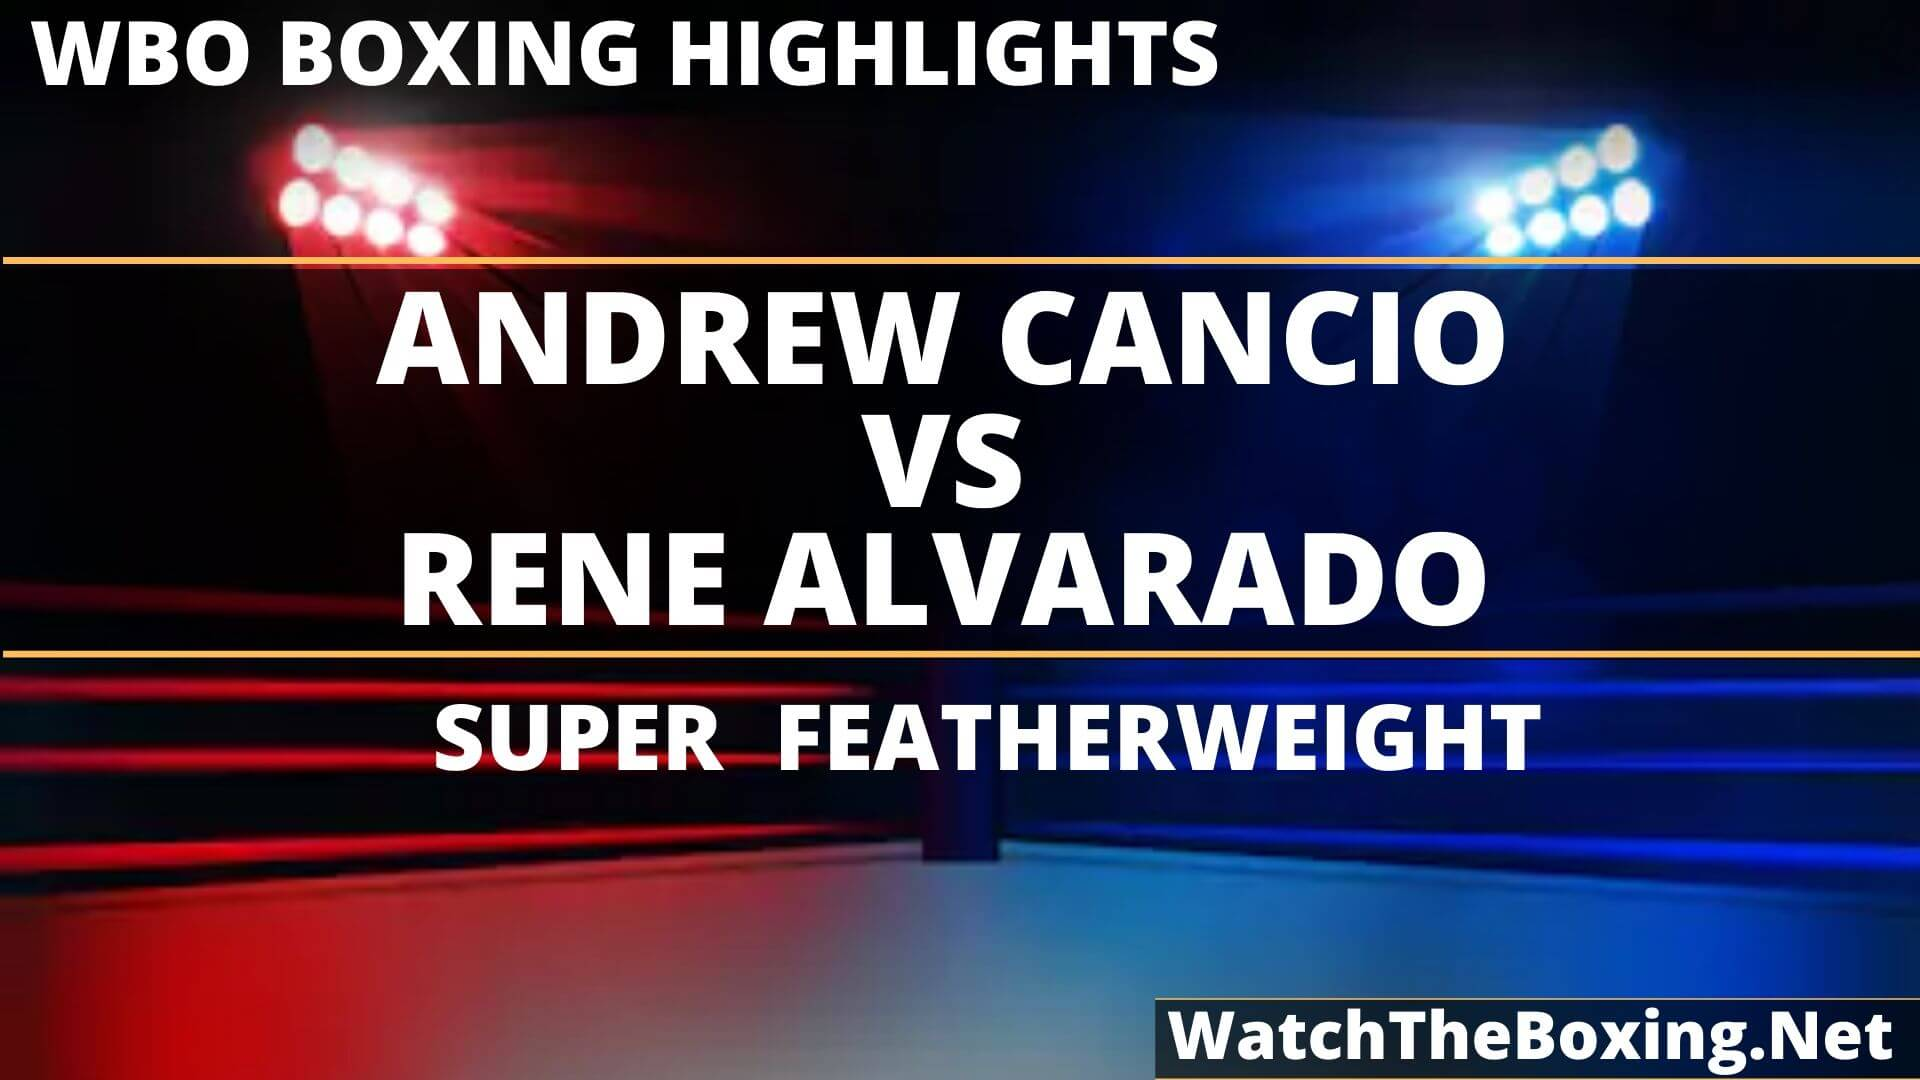 Andrew Cancio Vs Rene Alvarado Highlights 2019